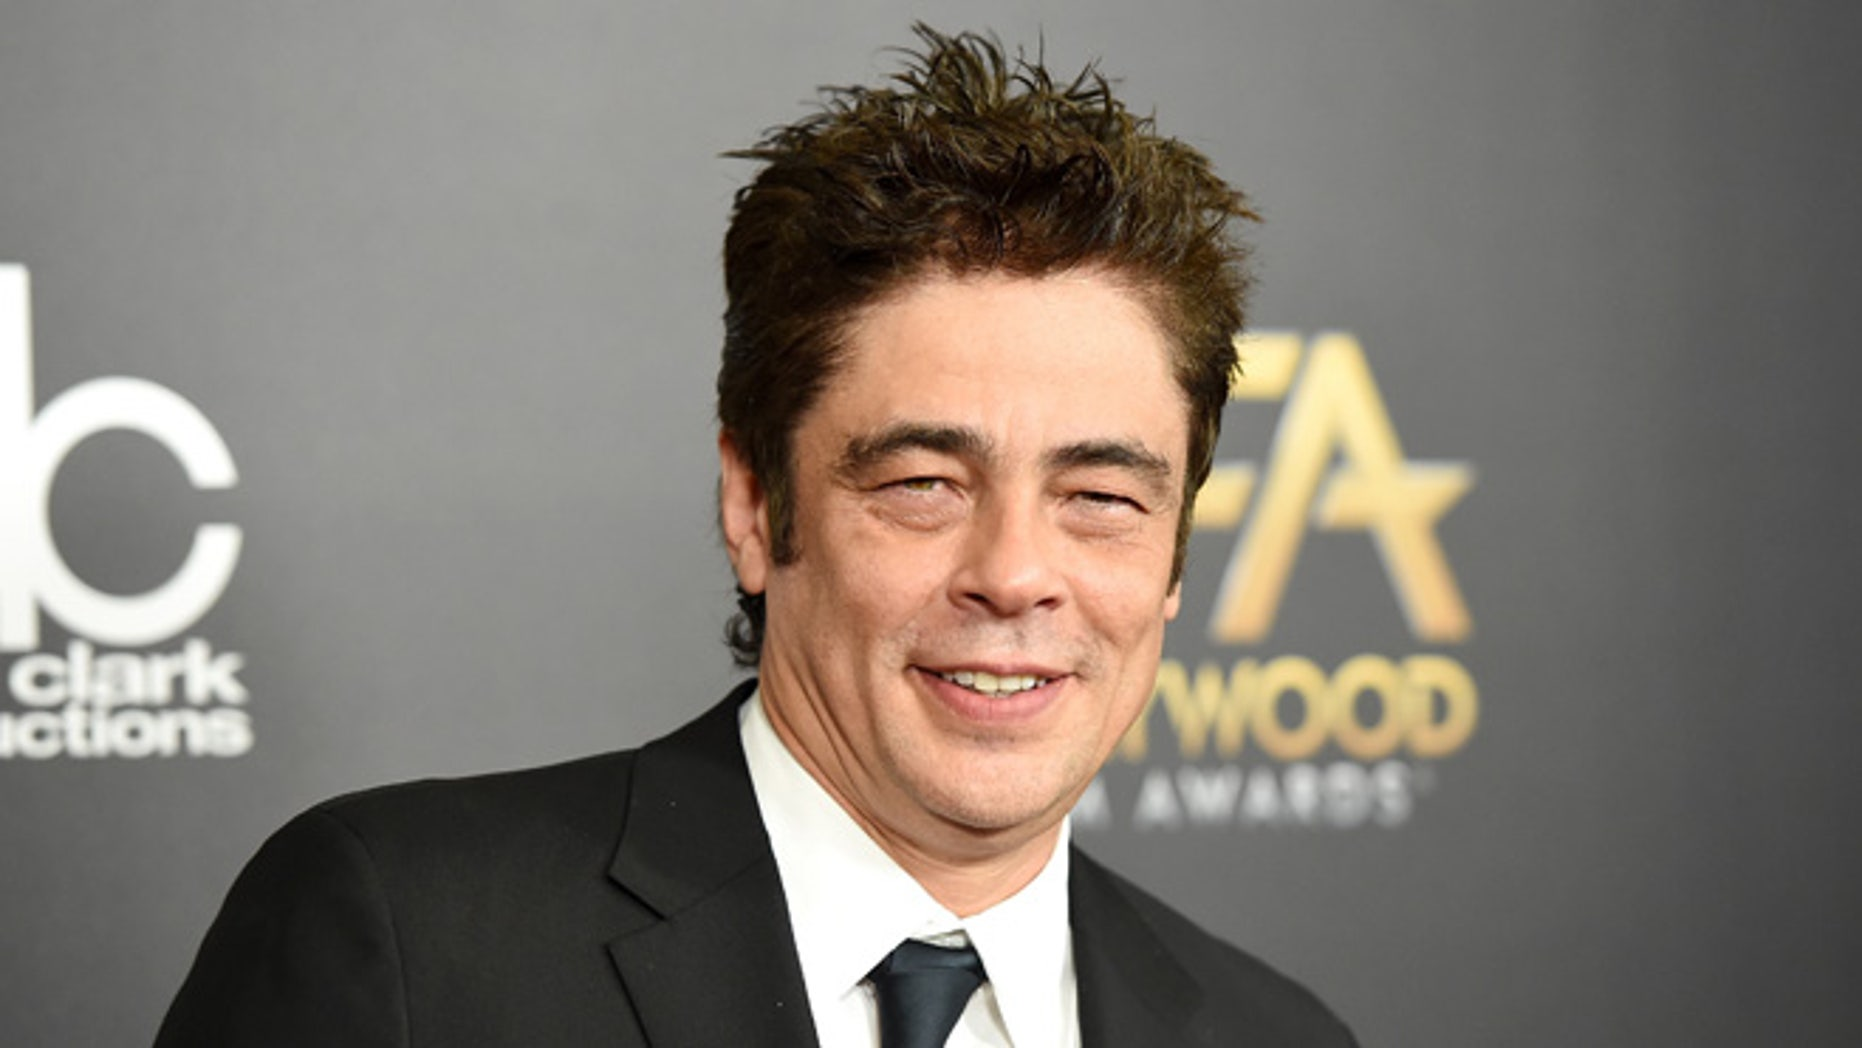 BEVERLY HILLS, CA - NOVEMBER 01:  Actor Benicio del Toro attends the 19th Annual Hollywood Film Awards at The Beverly Hilton Hotel on November 1, 2015 in Beverly Hills, California.  (Photo by Jason Merritt/Getty Images)